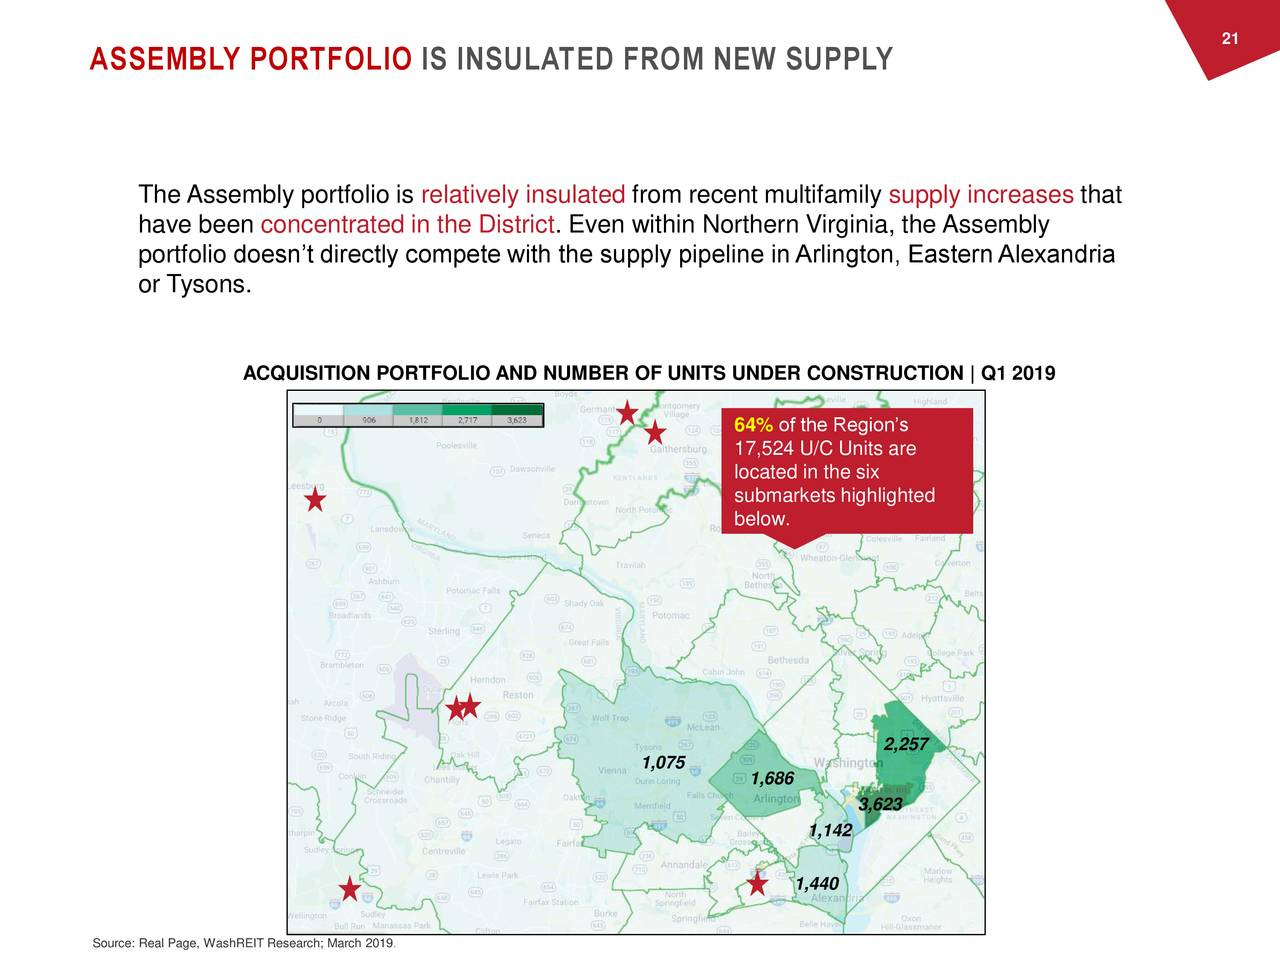 ASSEMBLY PORTFOLIO IS INSULATED FROM NEW SUPPLY The Assembly portfolio is relatively insulated from recent multifamily supply increases that have been concentrated in the District. Even within Northern Virginia, the Assembly portfolio doesn't directly compete with the supply pipeline in Arlington, EasternAlexandria or Tysons. ACQUISITION PORTFOLIO AND NUMBER OF UNITS UNDER CONSTRUCTION | Q1 2019 64% of the Region's 17,524 U/C Units are located in the six submarkets highlighted below. 2,257 1,075 1,686 3,623 1,142 1,440 Source: Real Page, WashREIT Research; March 2019.